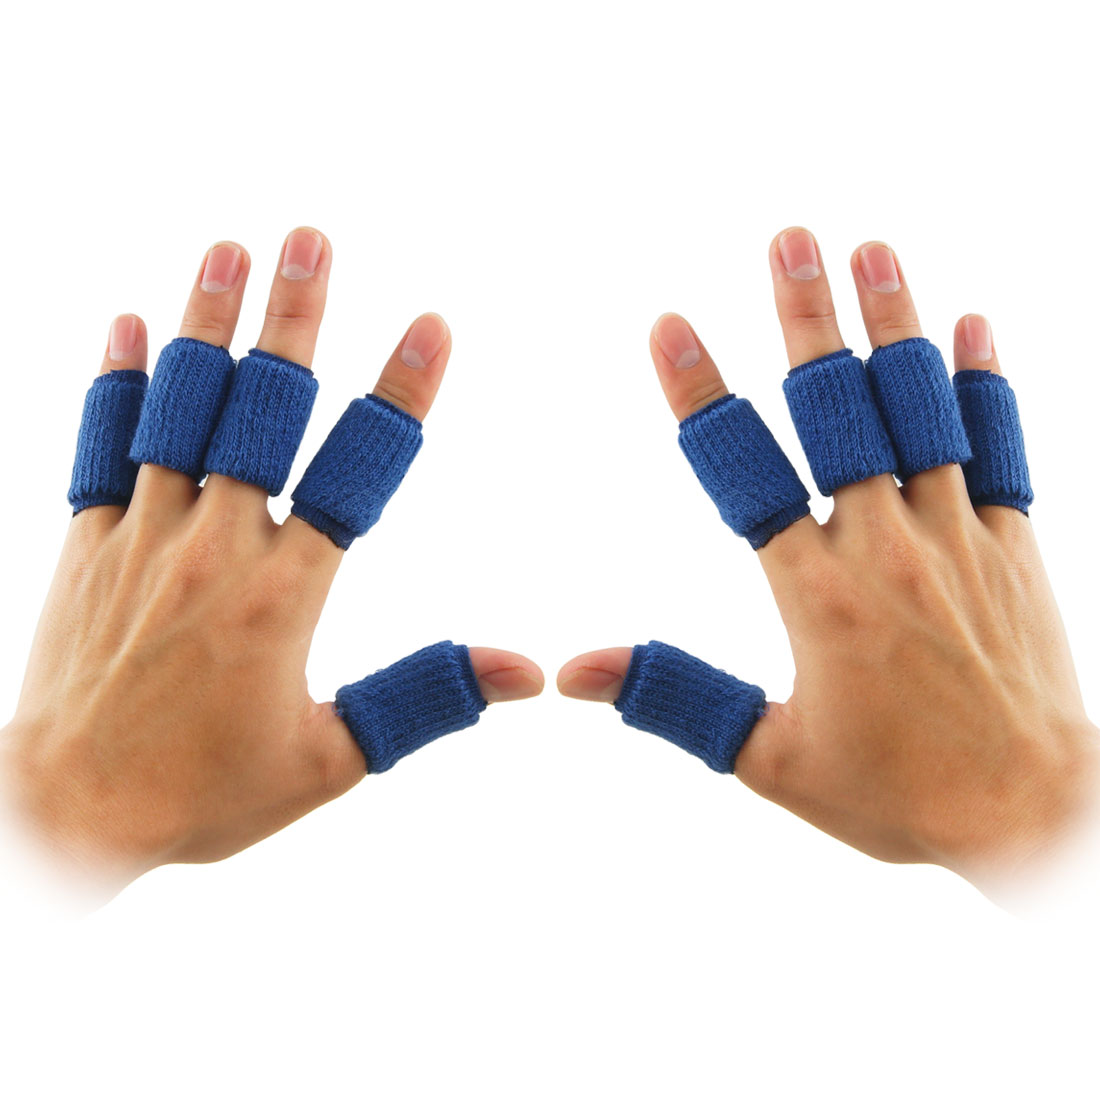 10 Pcs Sports Basketball Blue Elastic Finger Sleeve Supprots